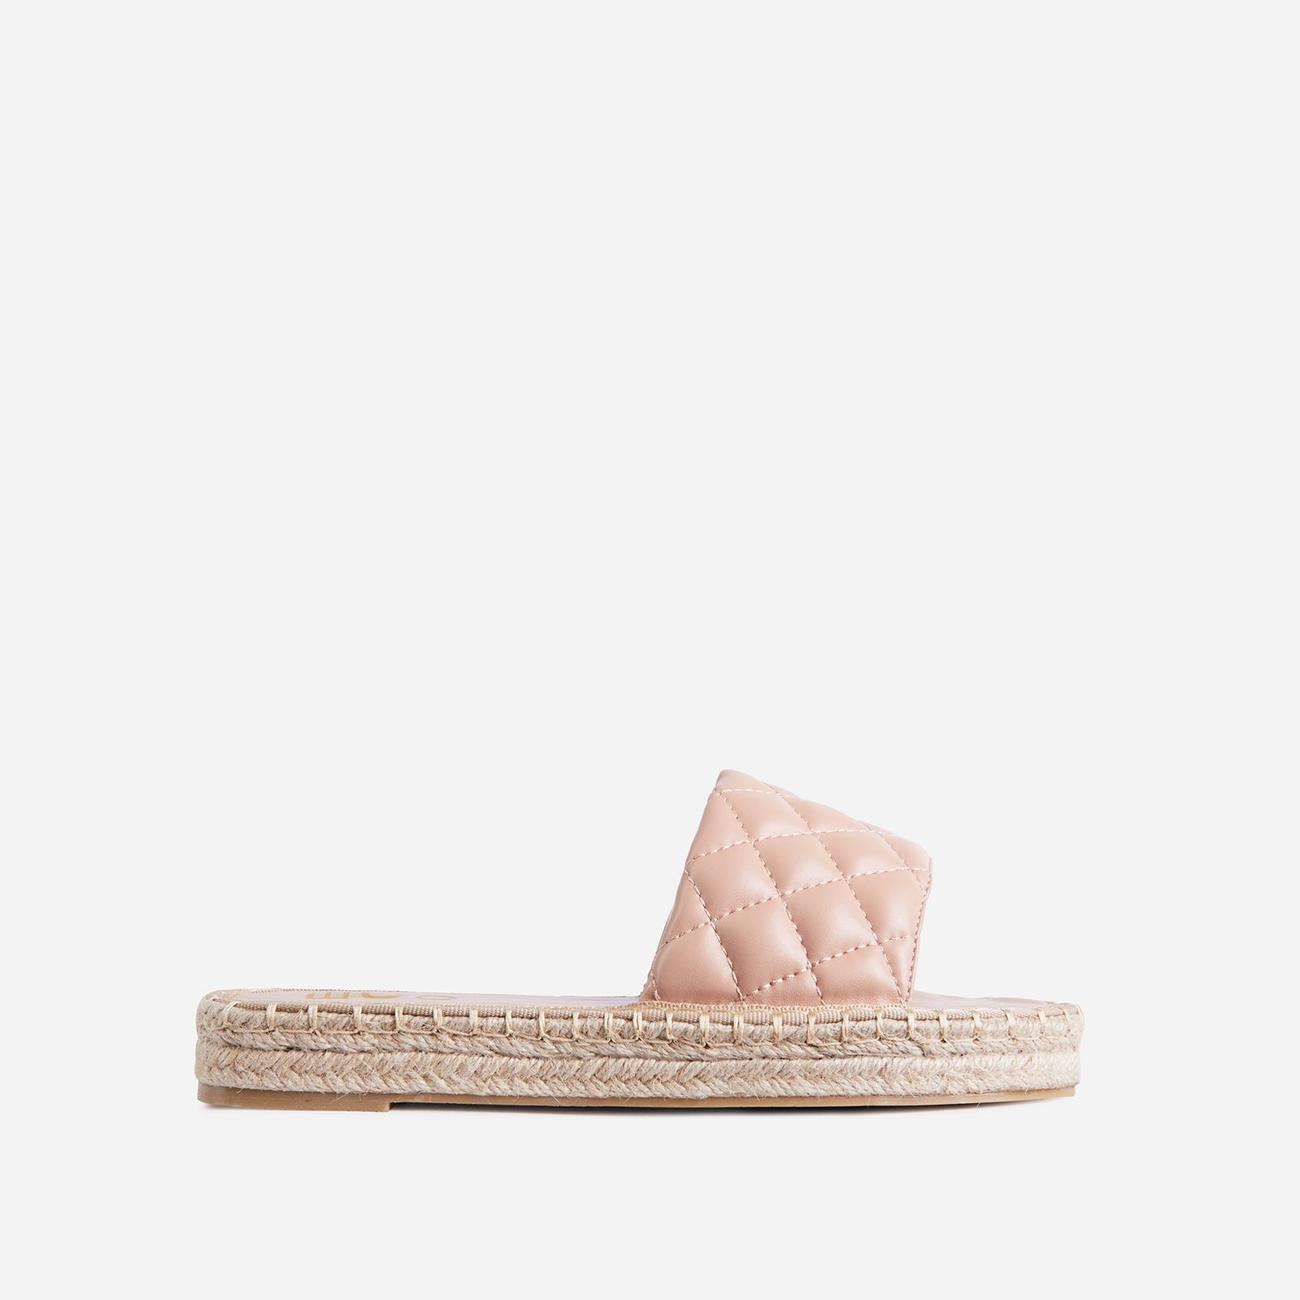 Aquarius Quilted Espadrille Flat Slider Sandal In Nude Faux Leather Image 1